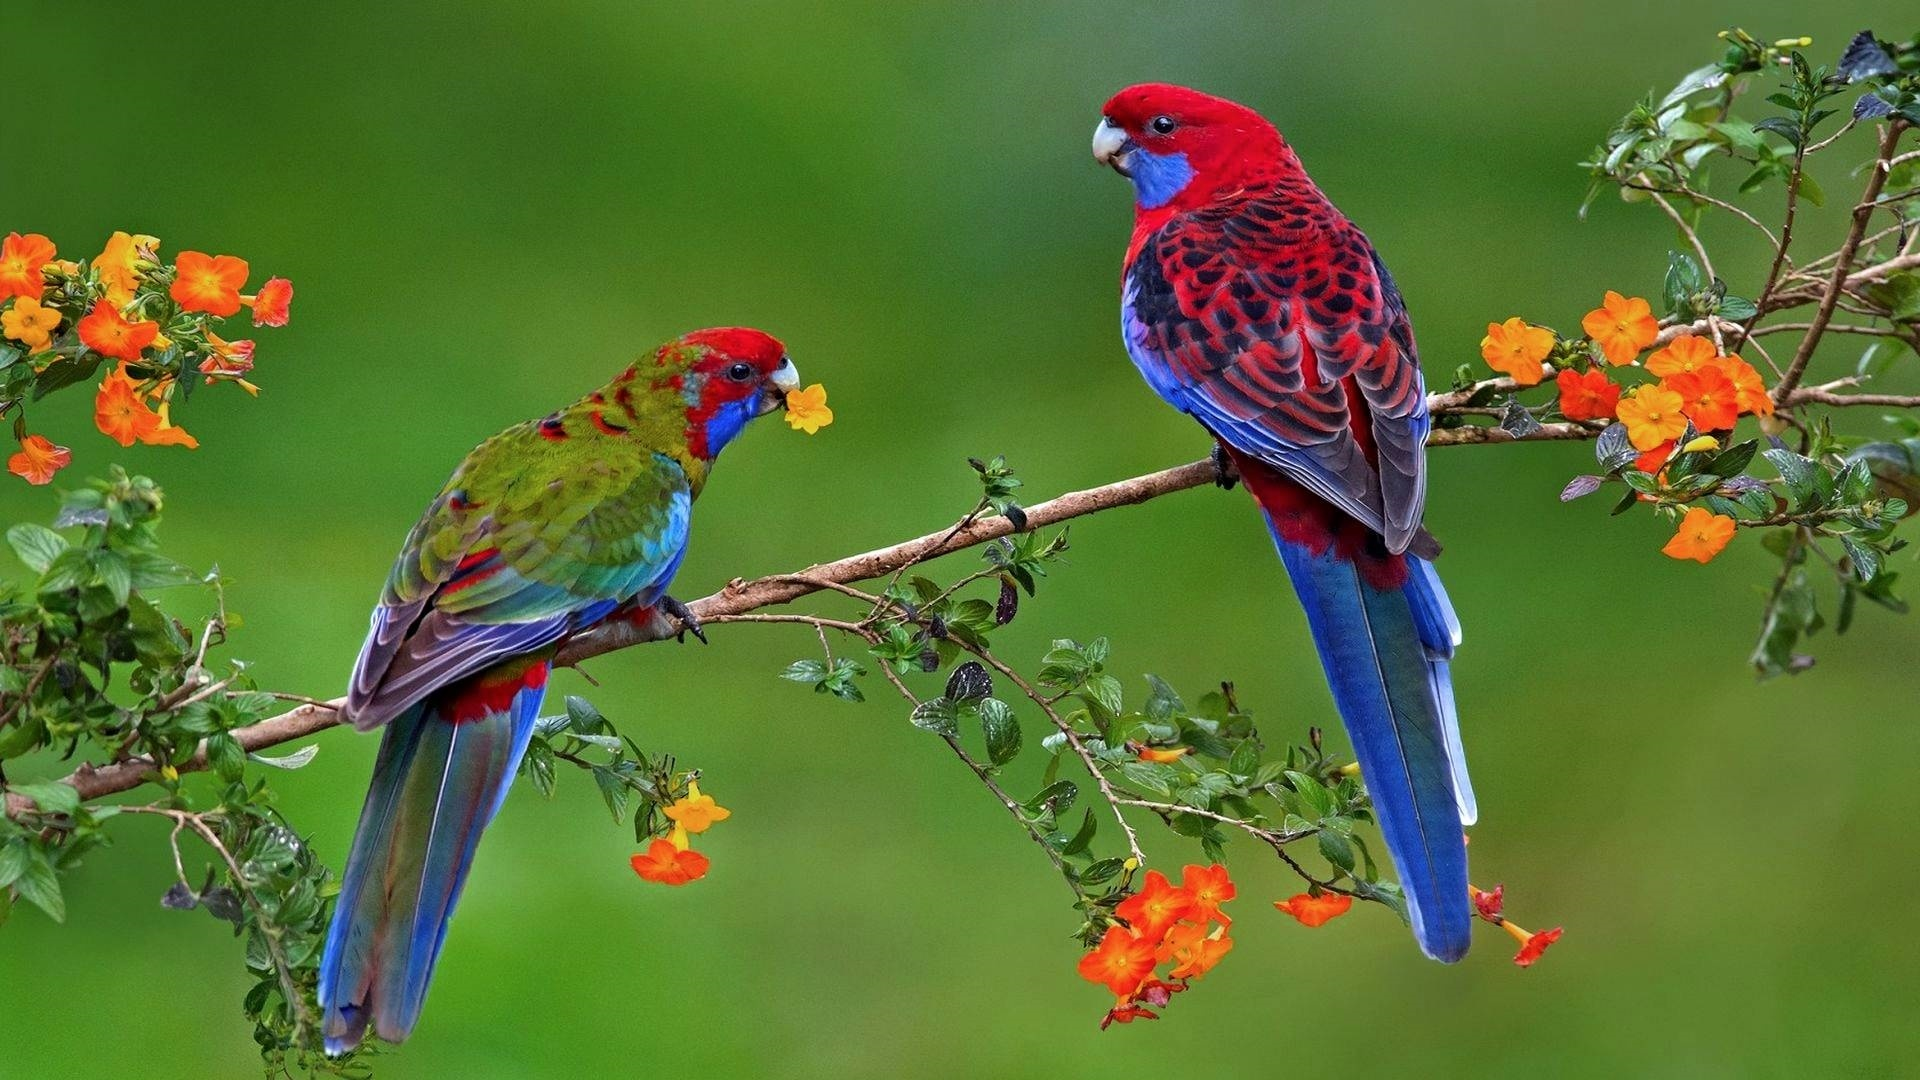 Colorful Bird free background